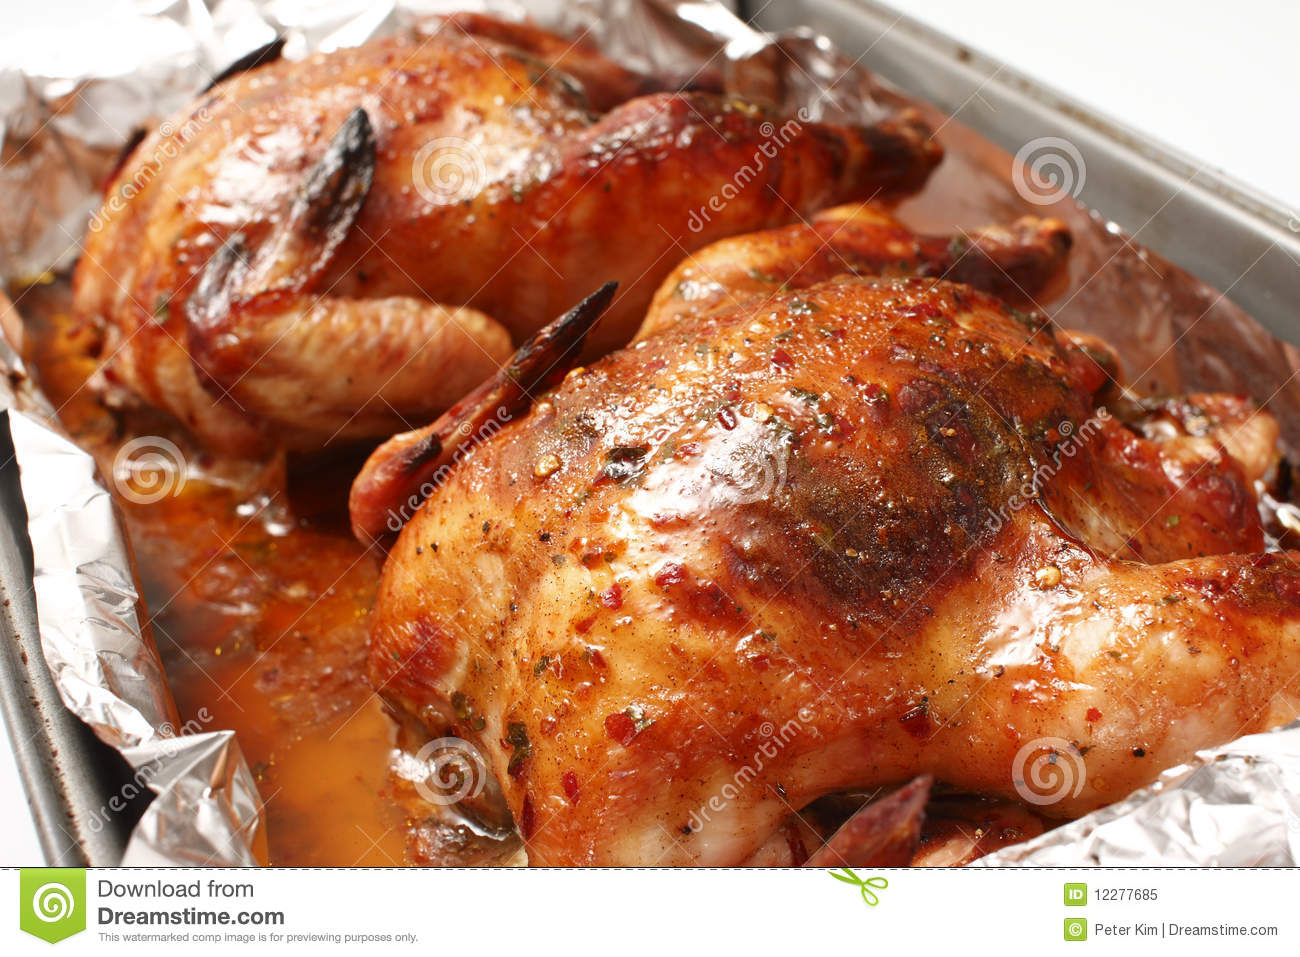 Baked chickens